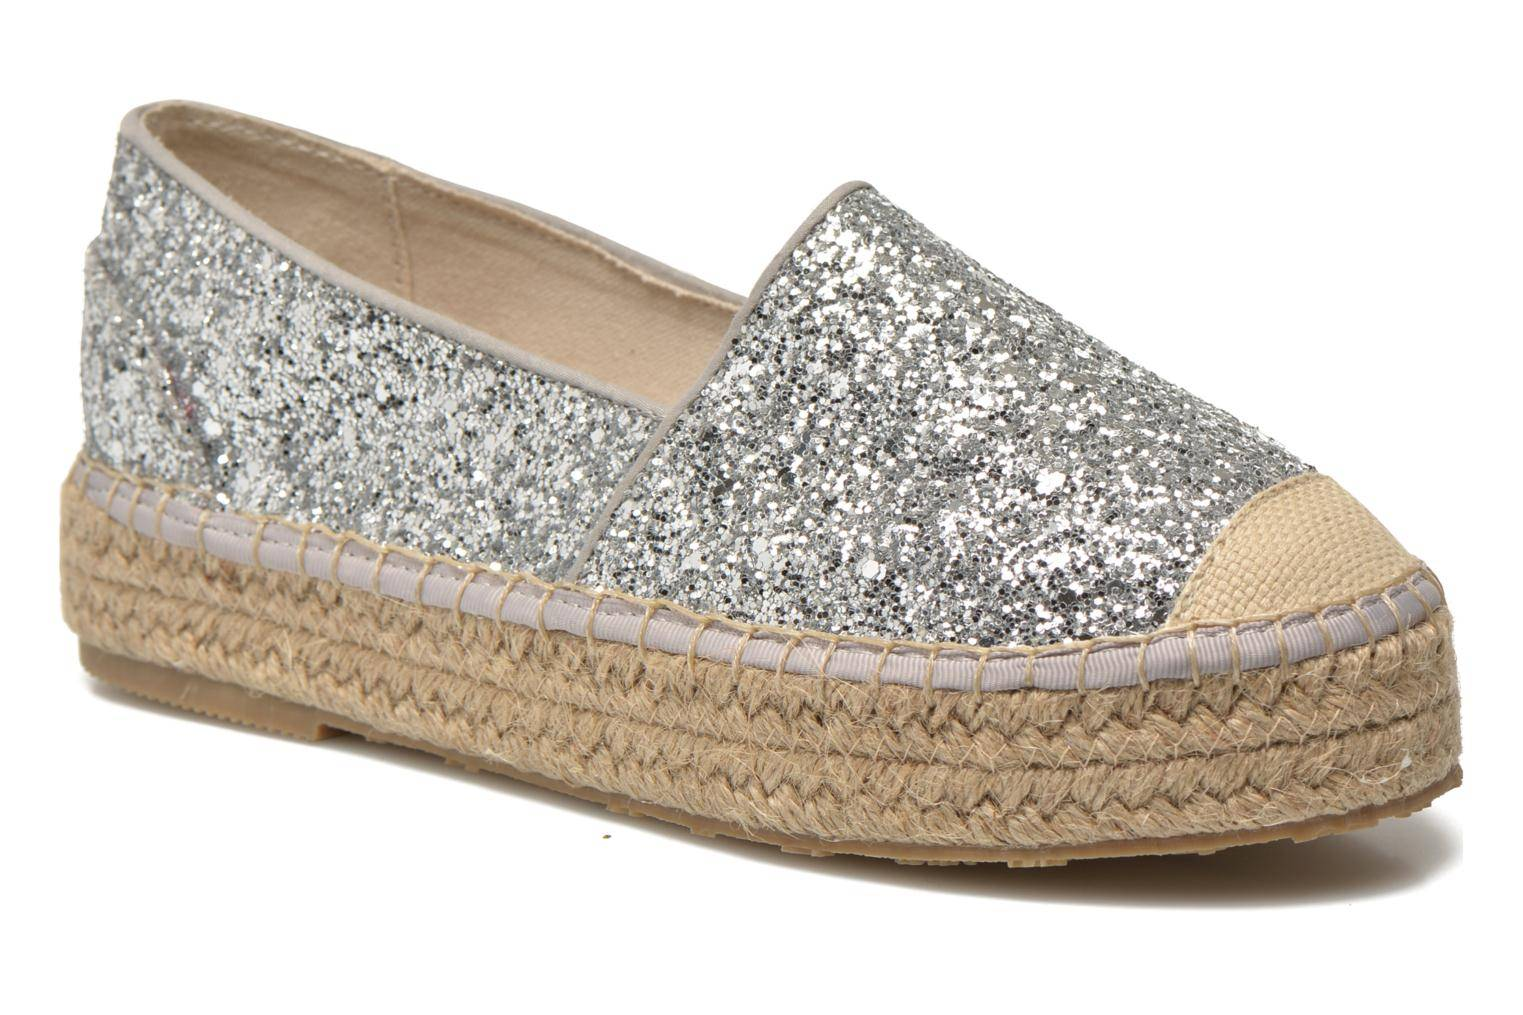 Mustang shoes - Brouw by  - Espadrillot Naisille  / Hopea